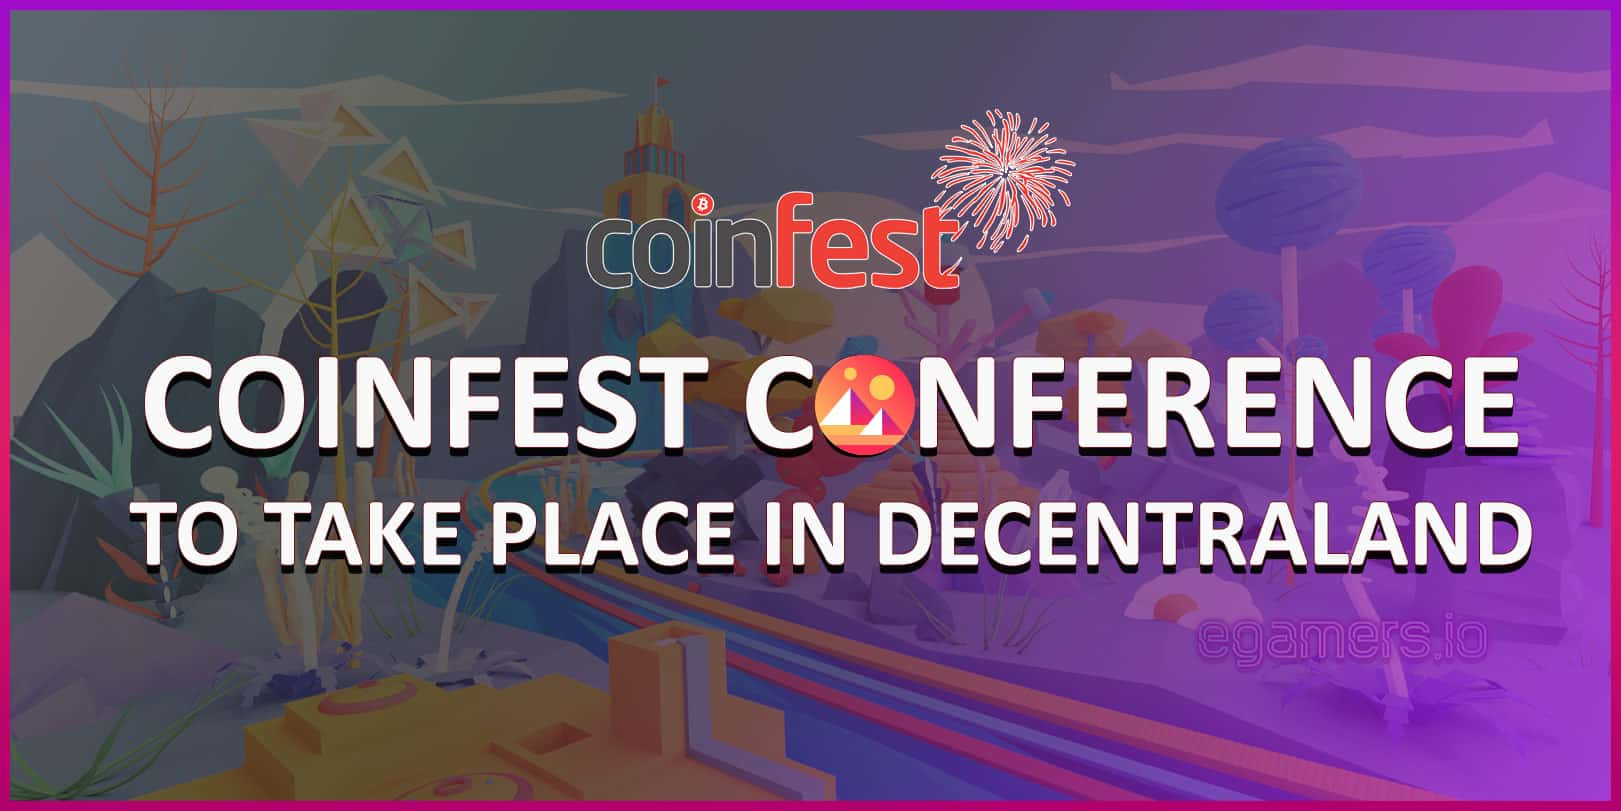 Coinfest Conferece to take place in decentraland